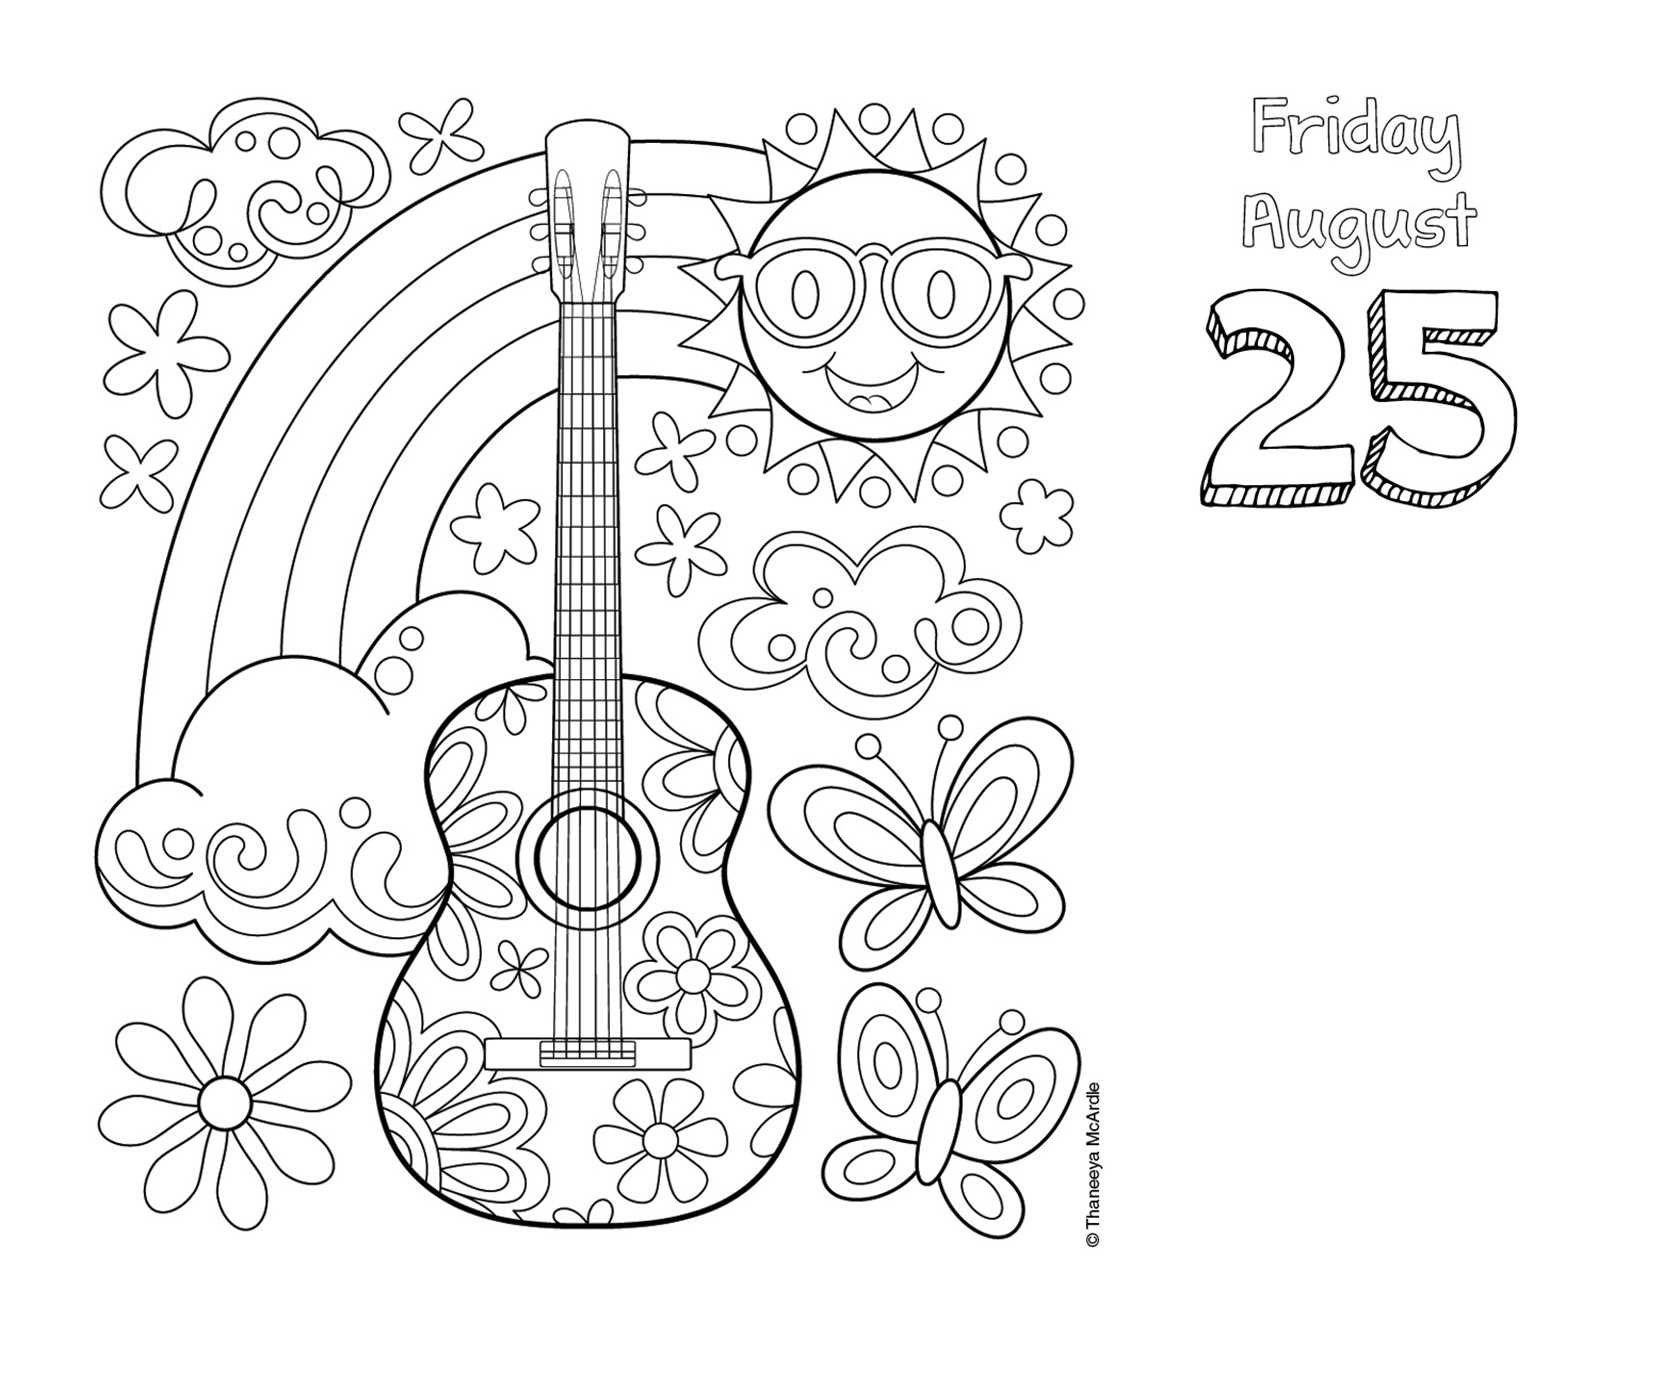 The coloring book project 2nd edition - Posh Coloring 2017 Day To Day Calendar Thaneeya Mcardle 9781449477141 Amazon Com Books